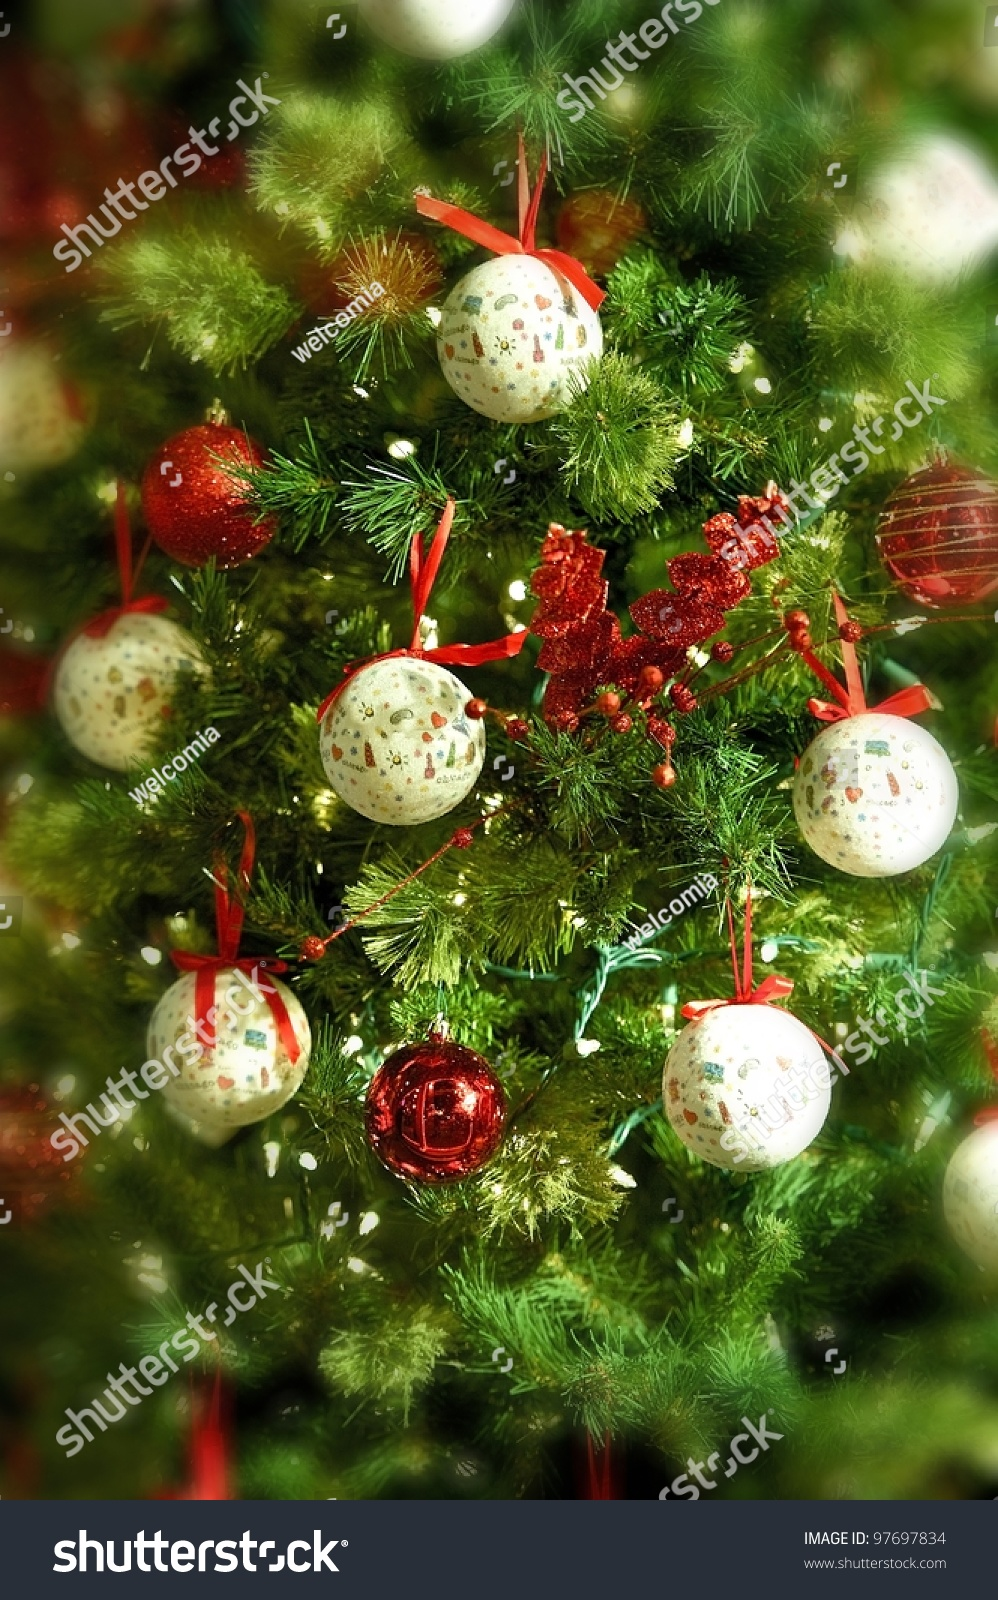 Christmas background tree ornaments vertical